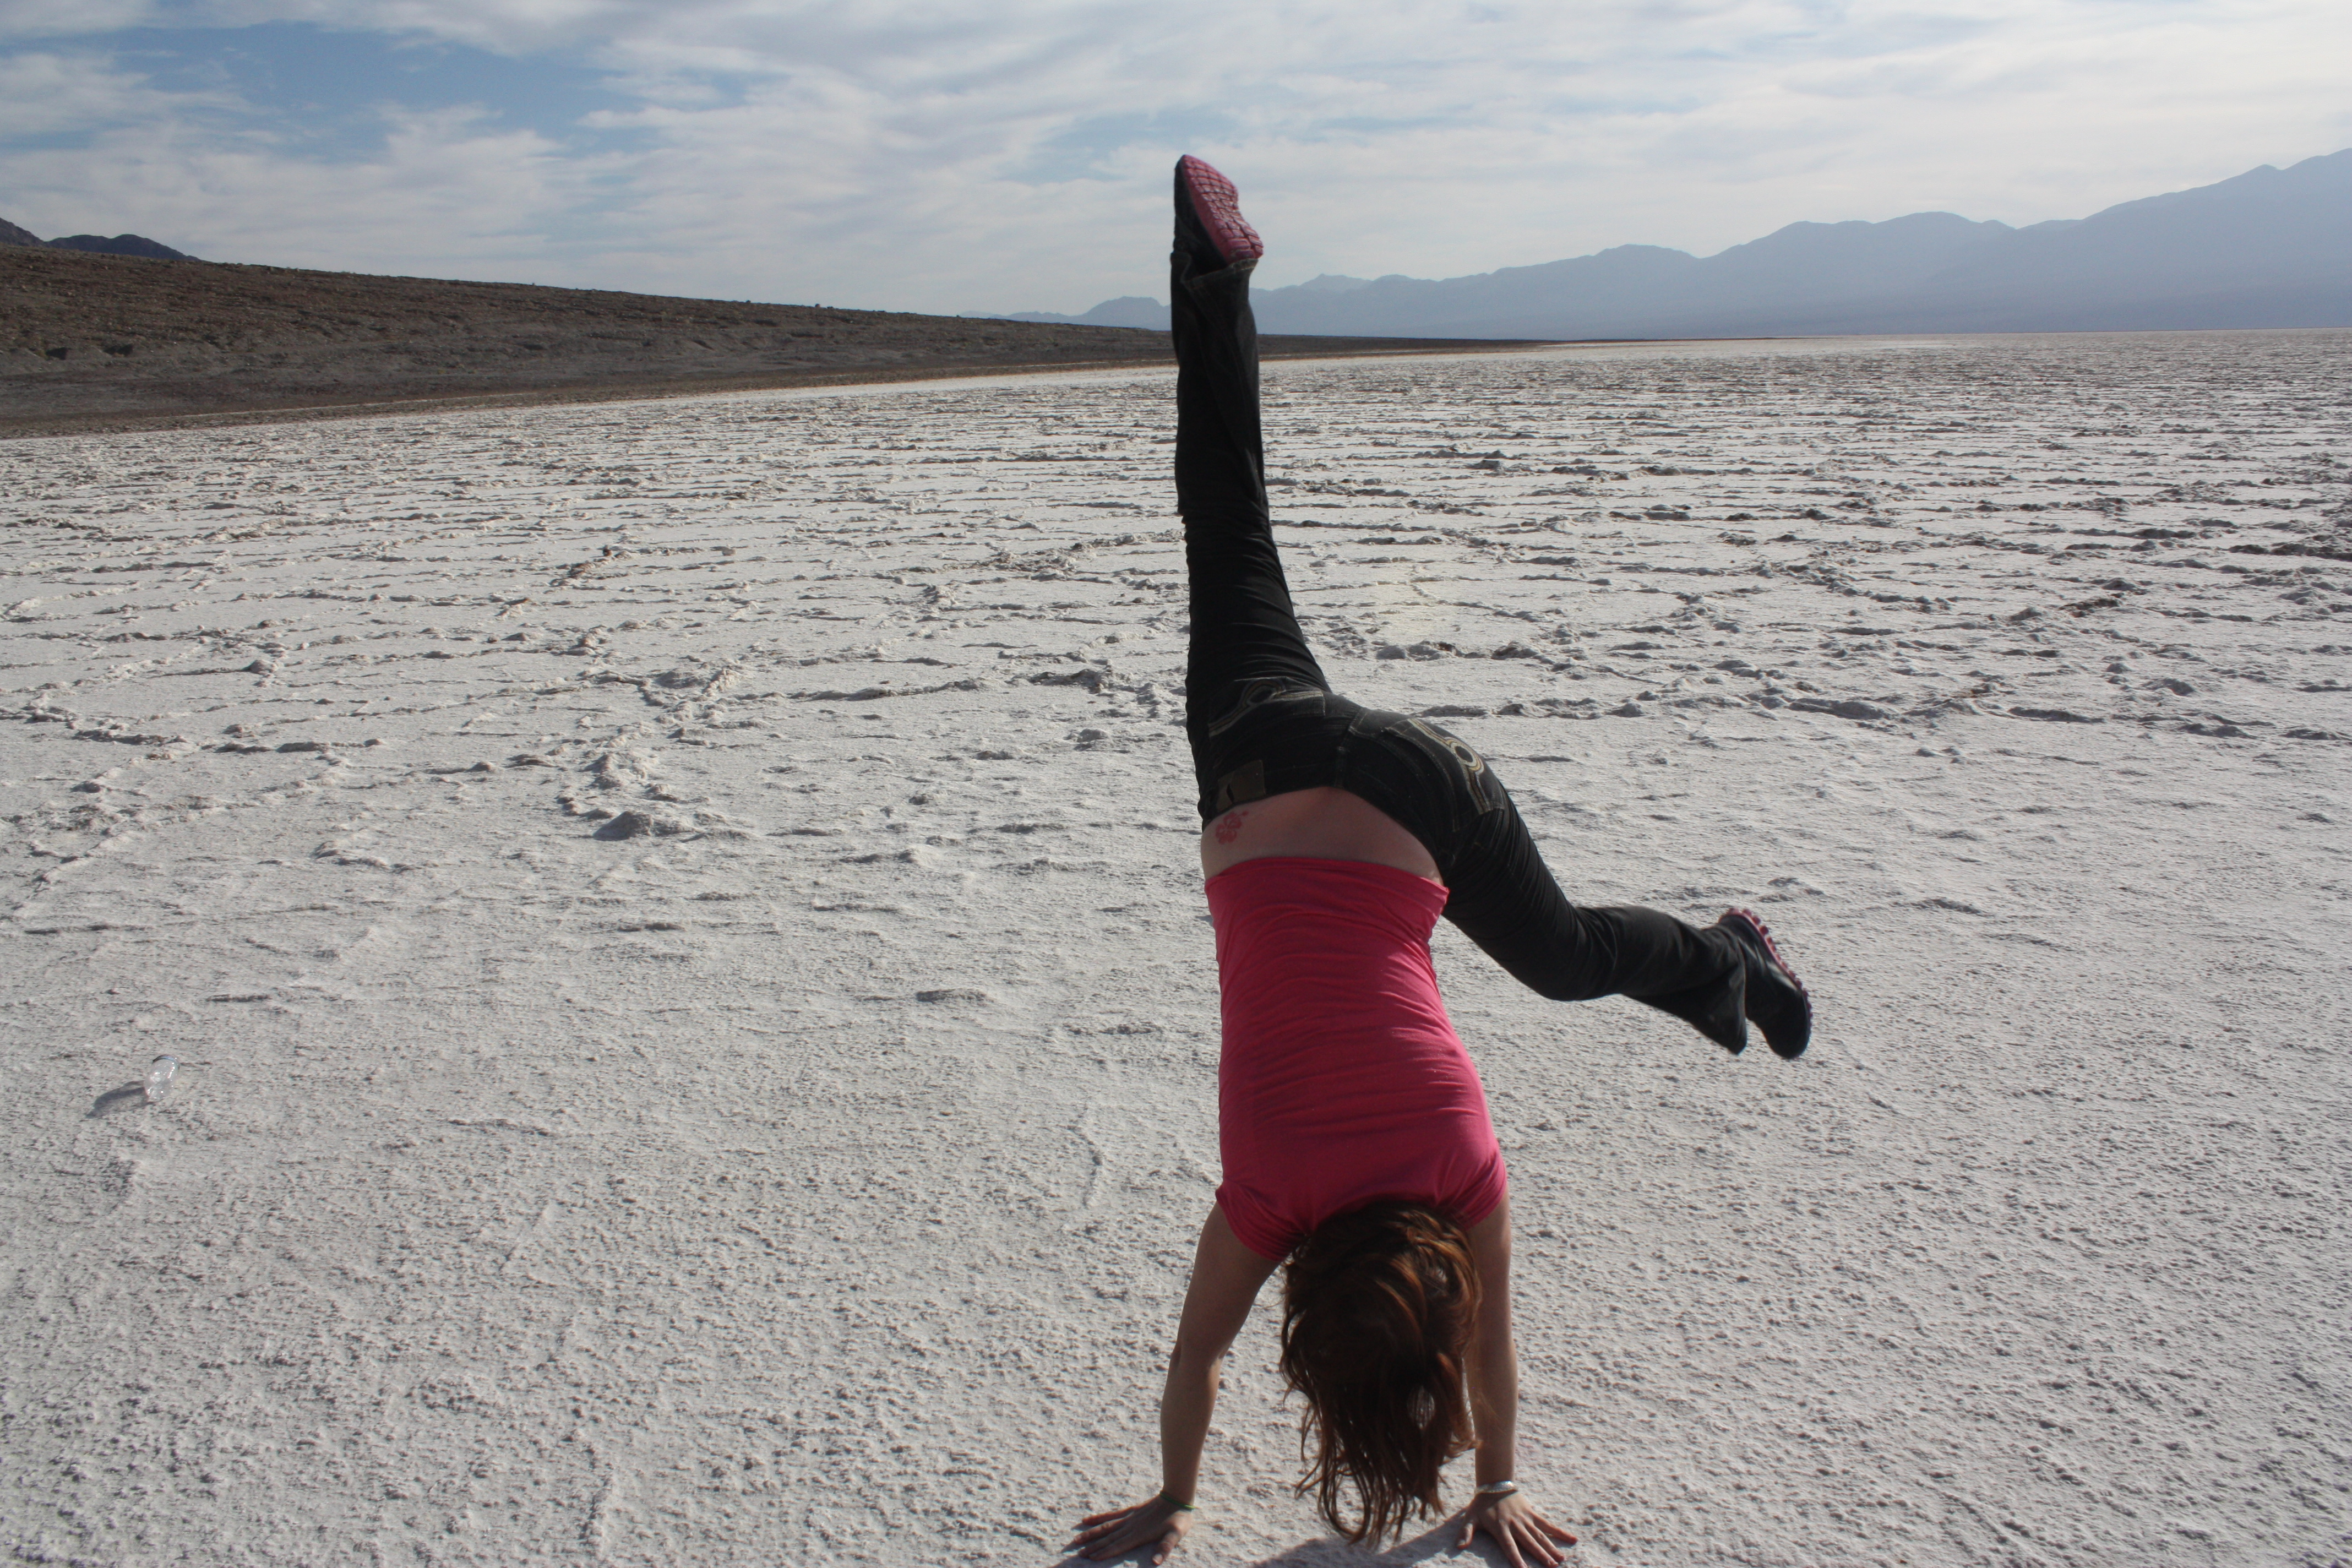 cartwheeling on the desert salt flats in Death valley